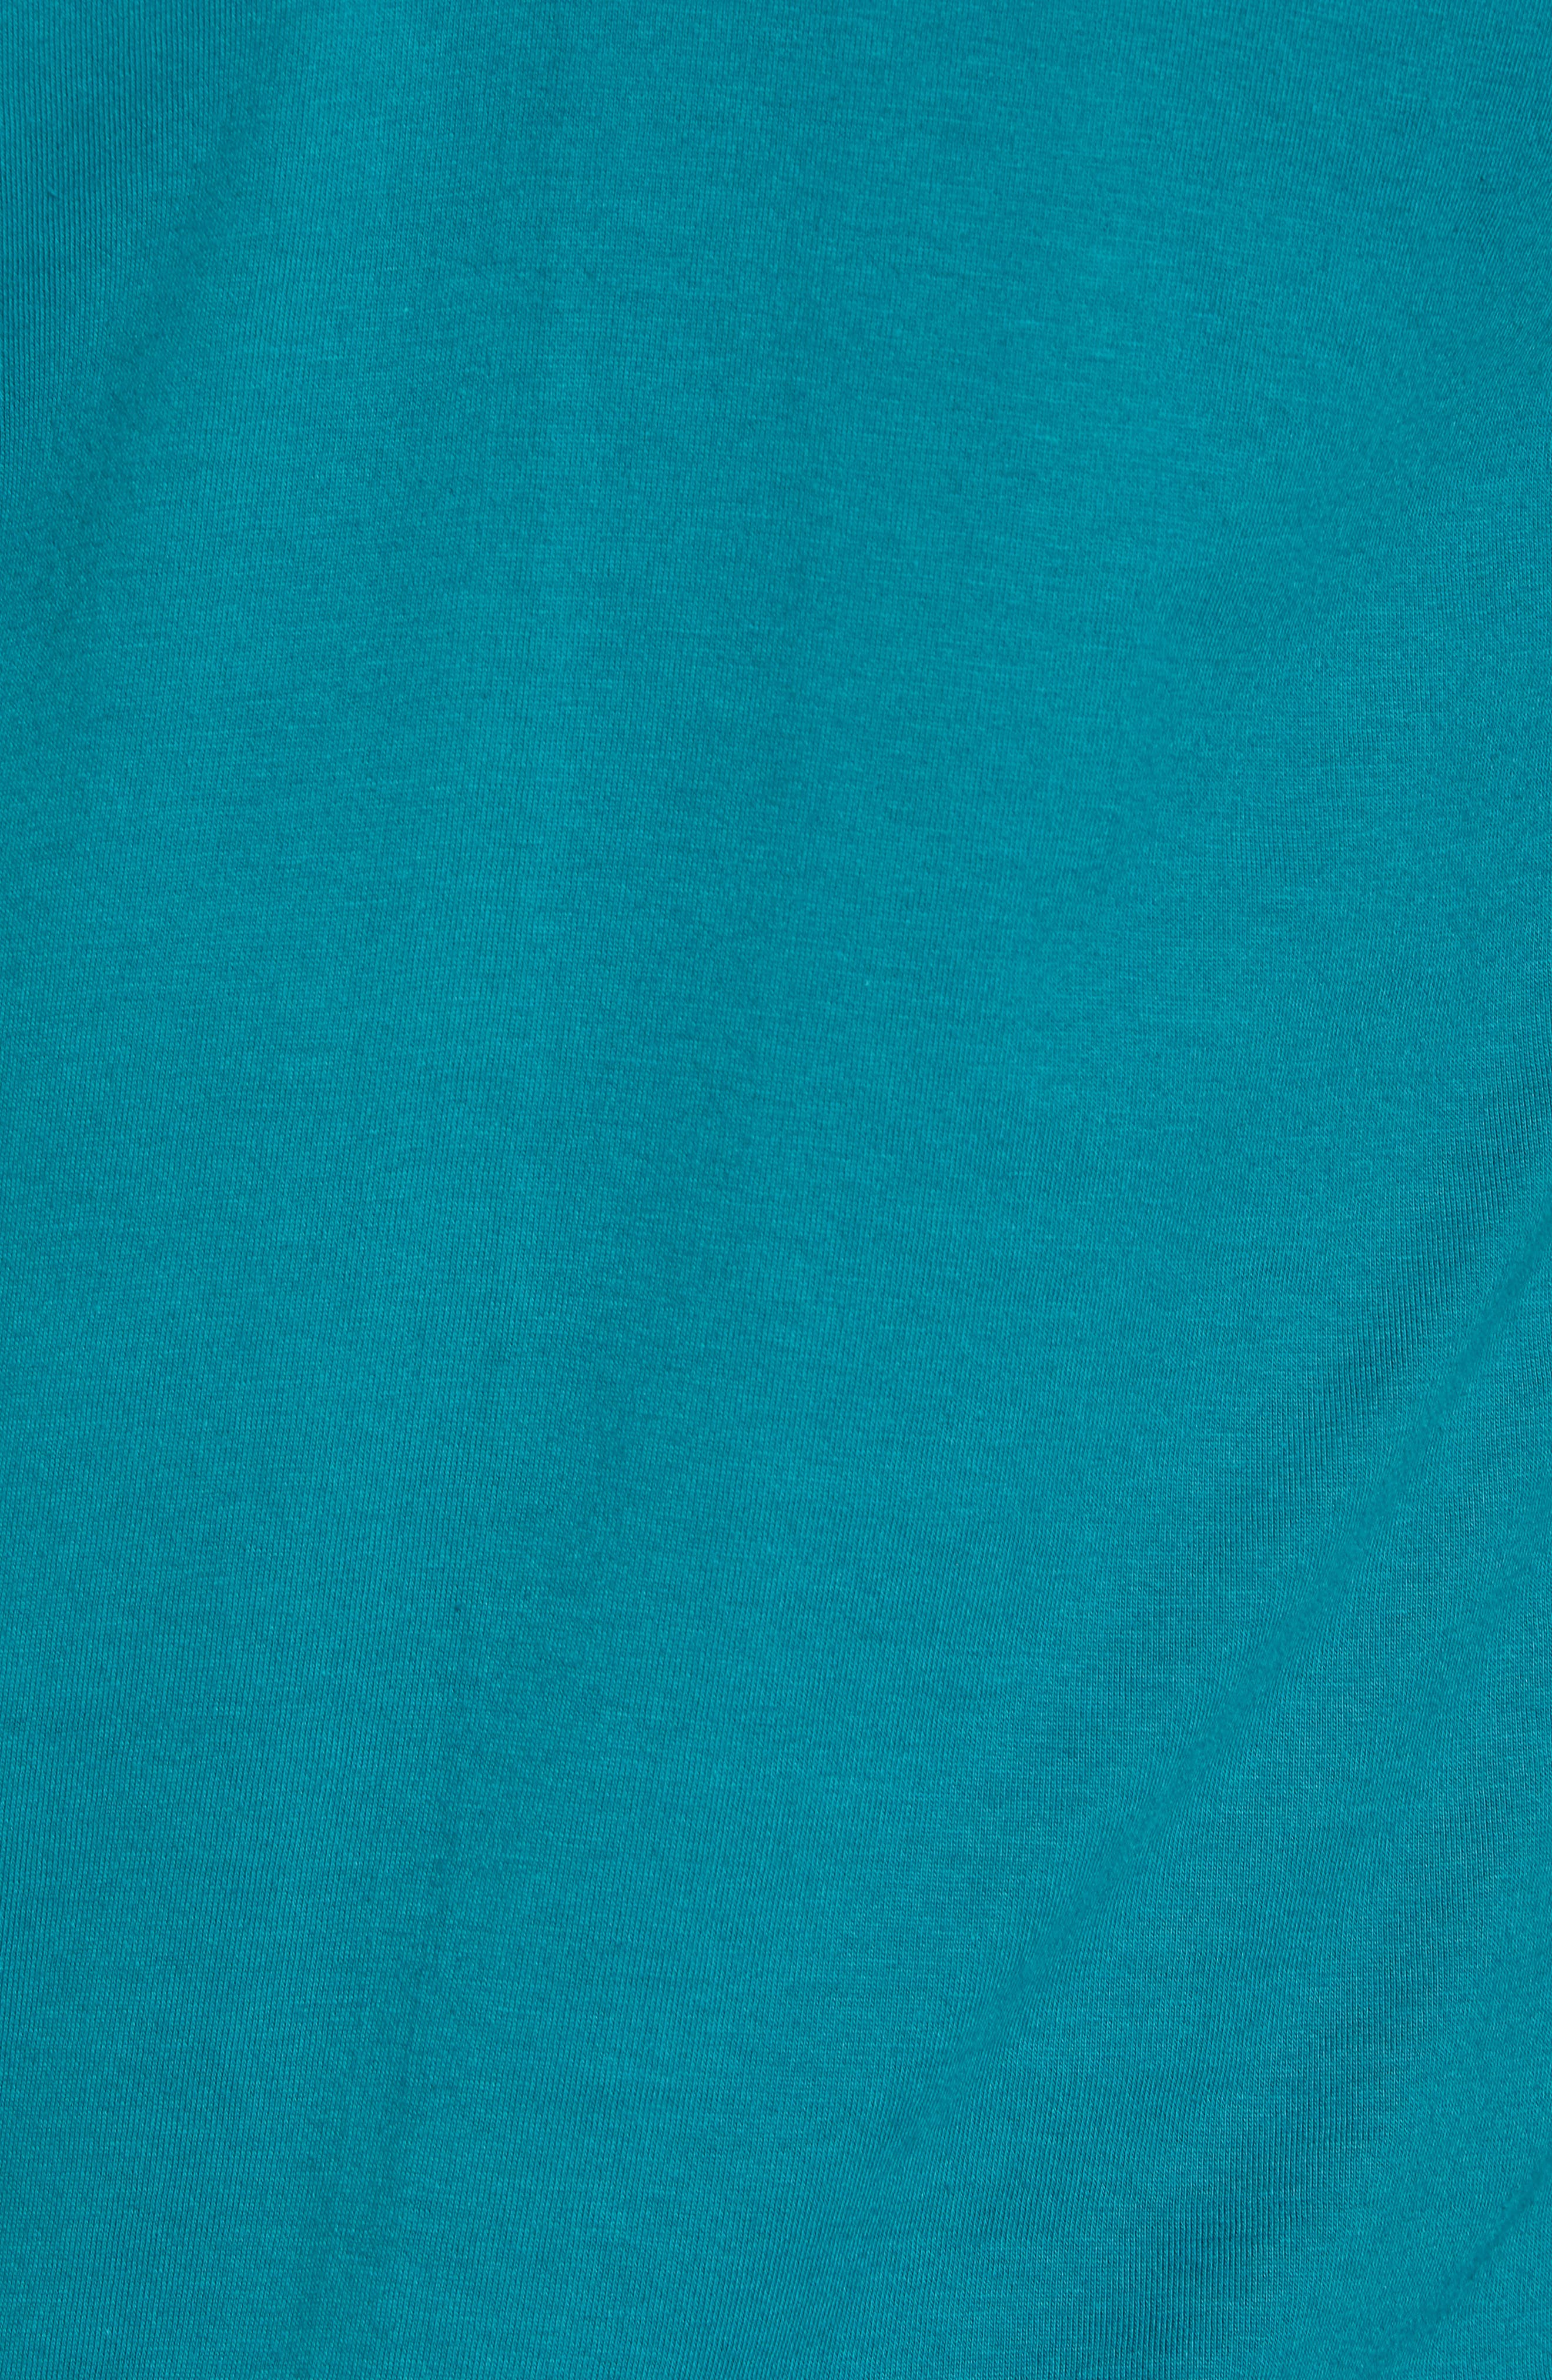 Flashback Graphic T-Shirt,                             Alternate thumbnail 5, color,                             Teal